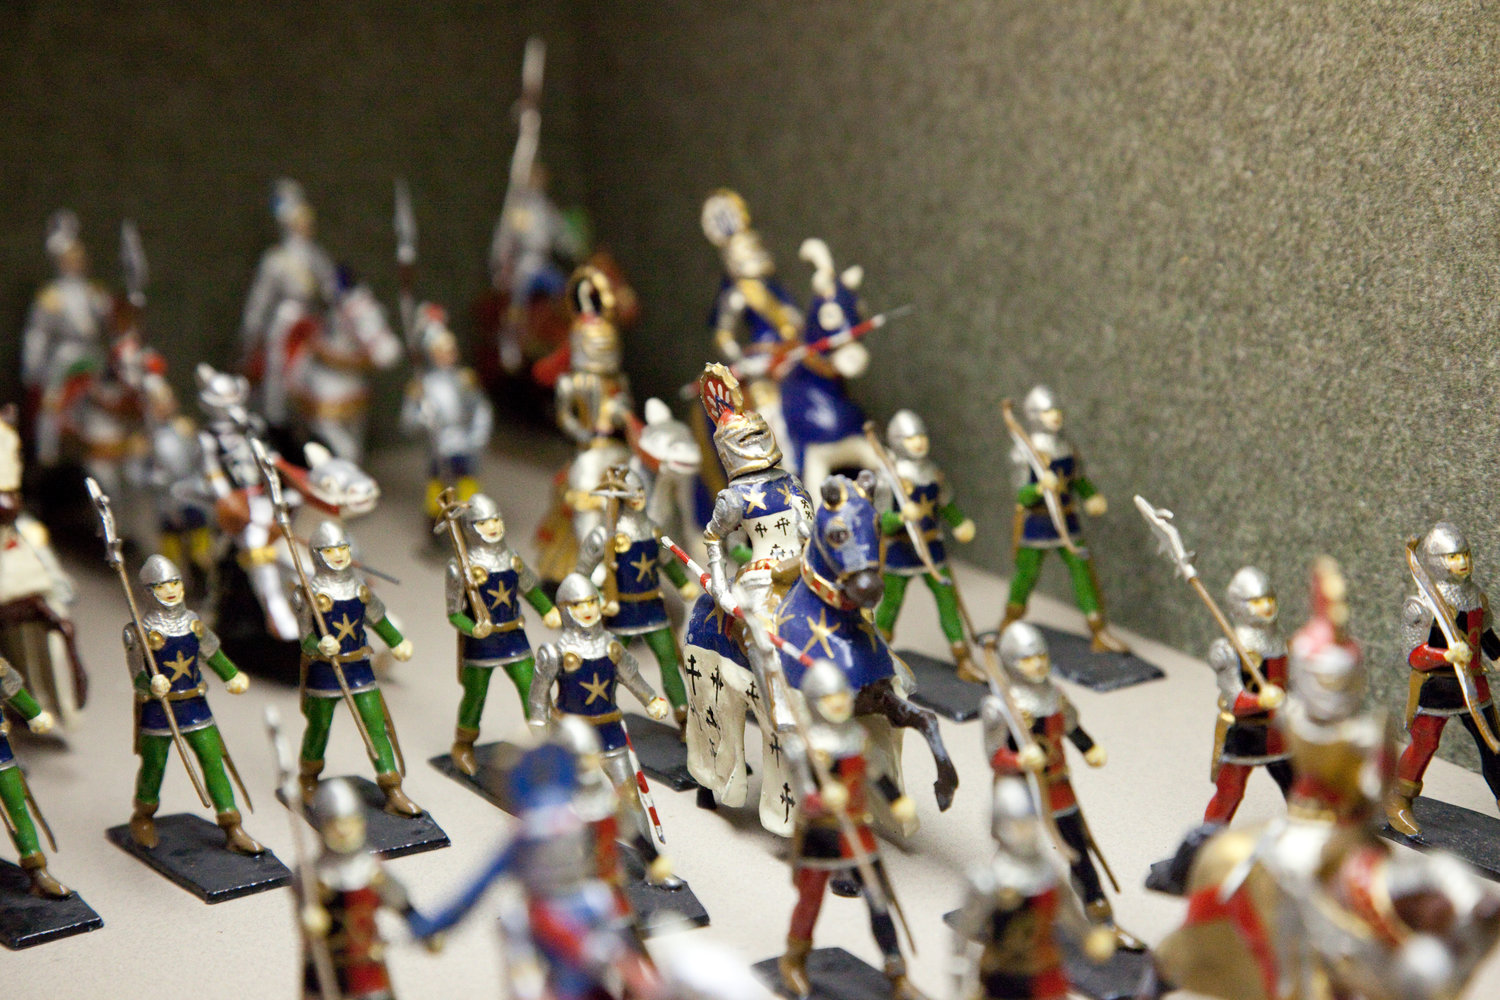 The miniature army of the Anne S.K. Brown Military Collection.